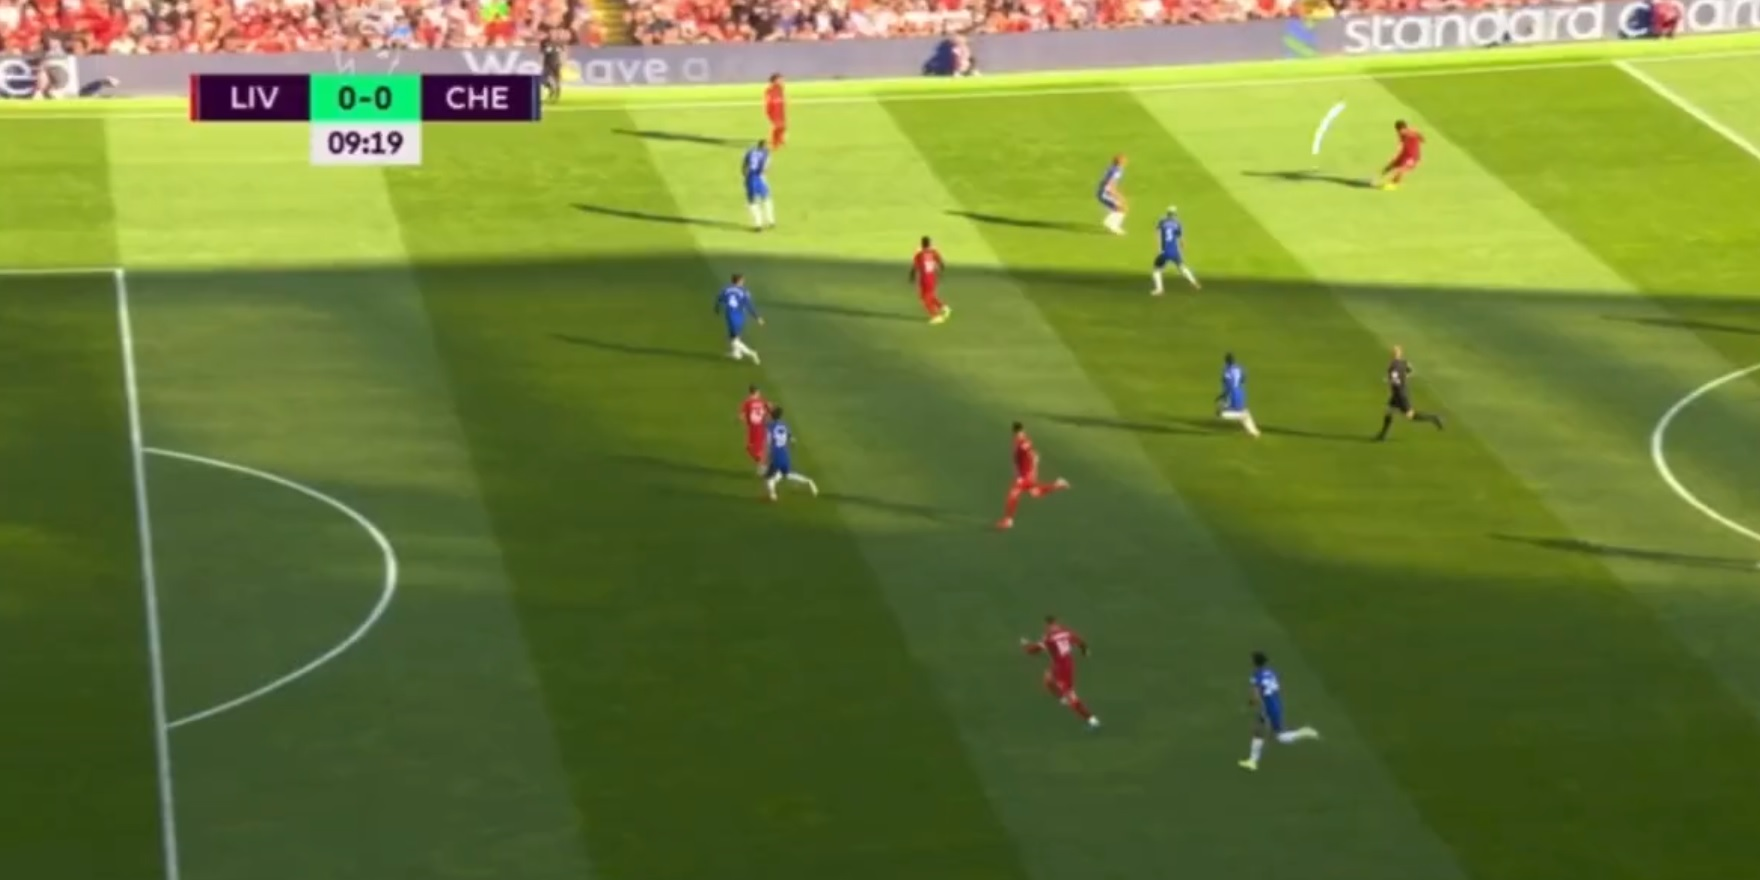 (Video) Trent sets up goalscoring opportunity with glorious lofted ball from close to the halfway line